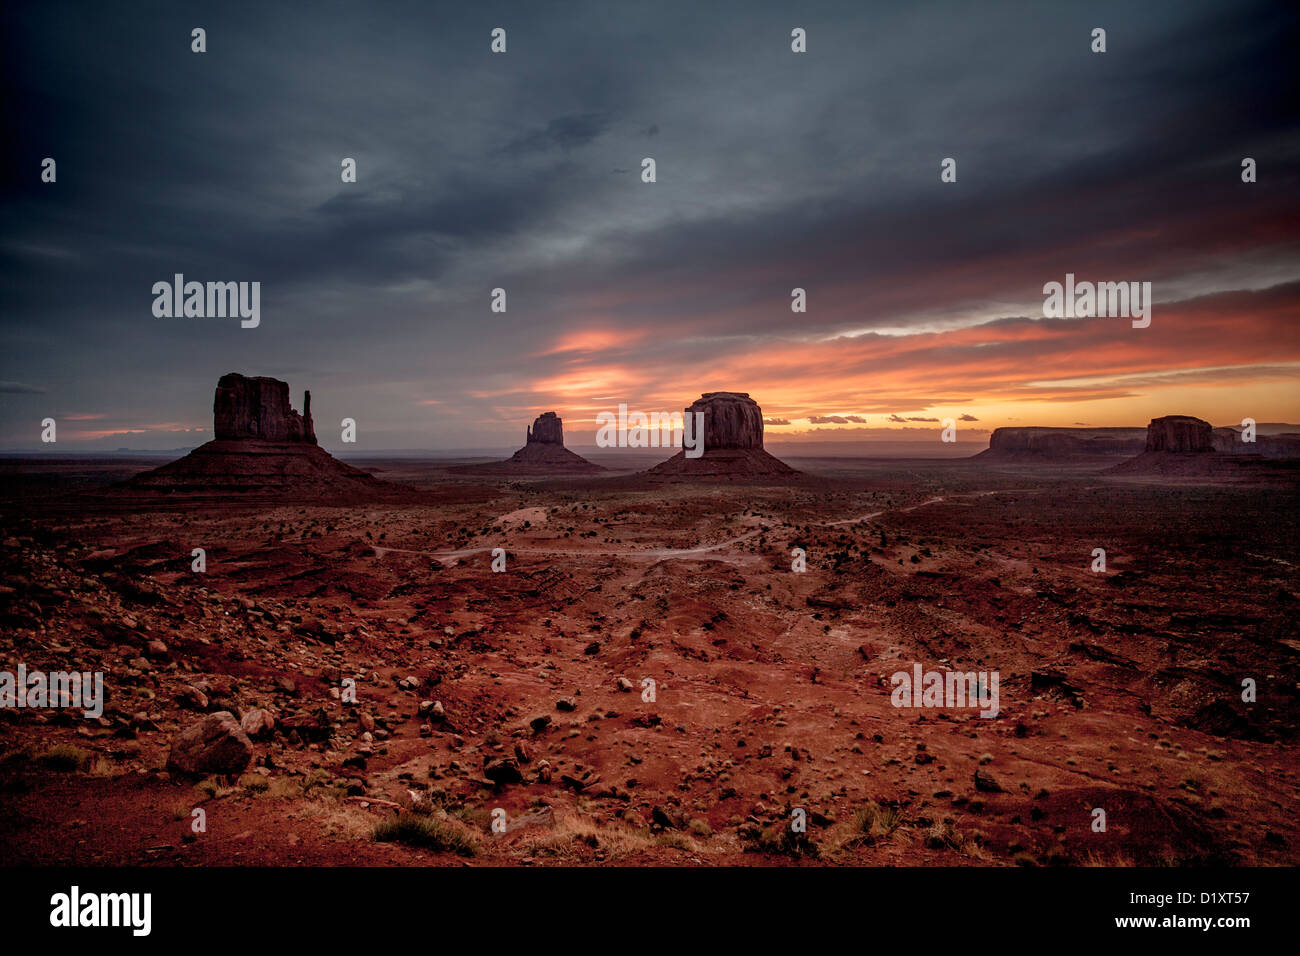 Monument Valley Navajo Tribal Park dans le Photo Stock